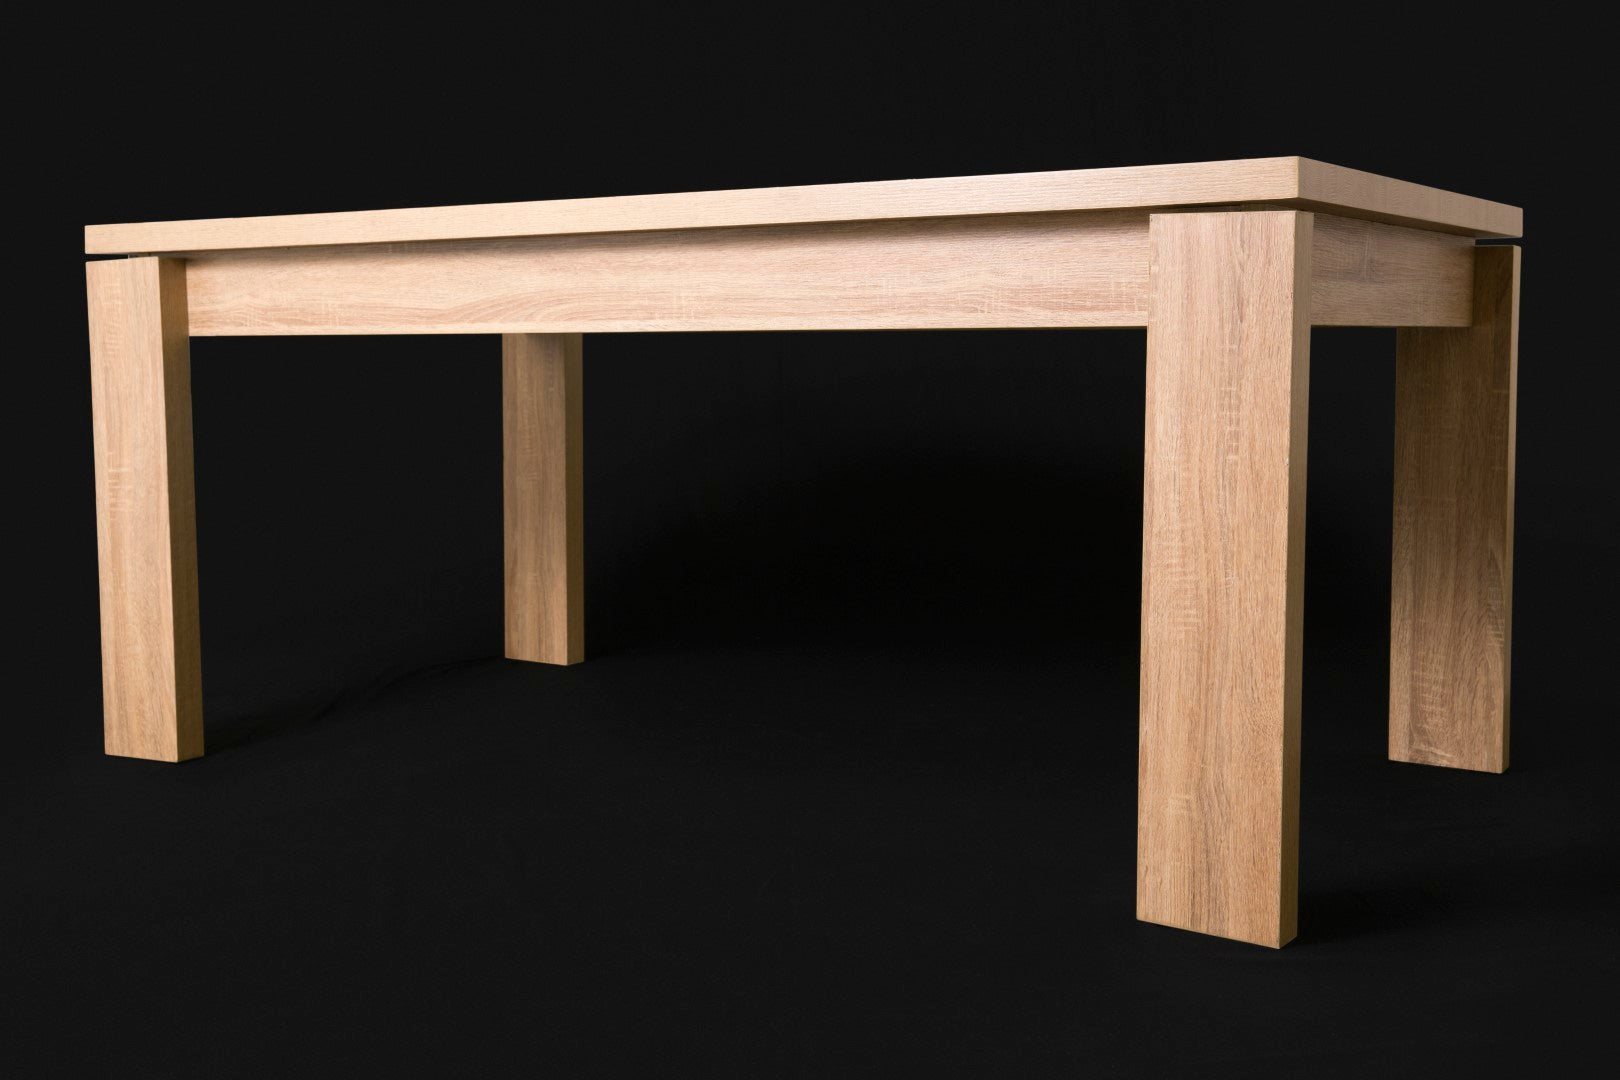 Letta 6 Seater Dining Room Table side view